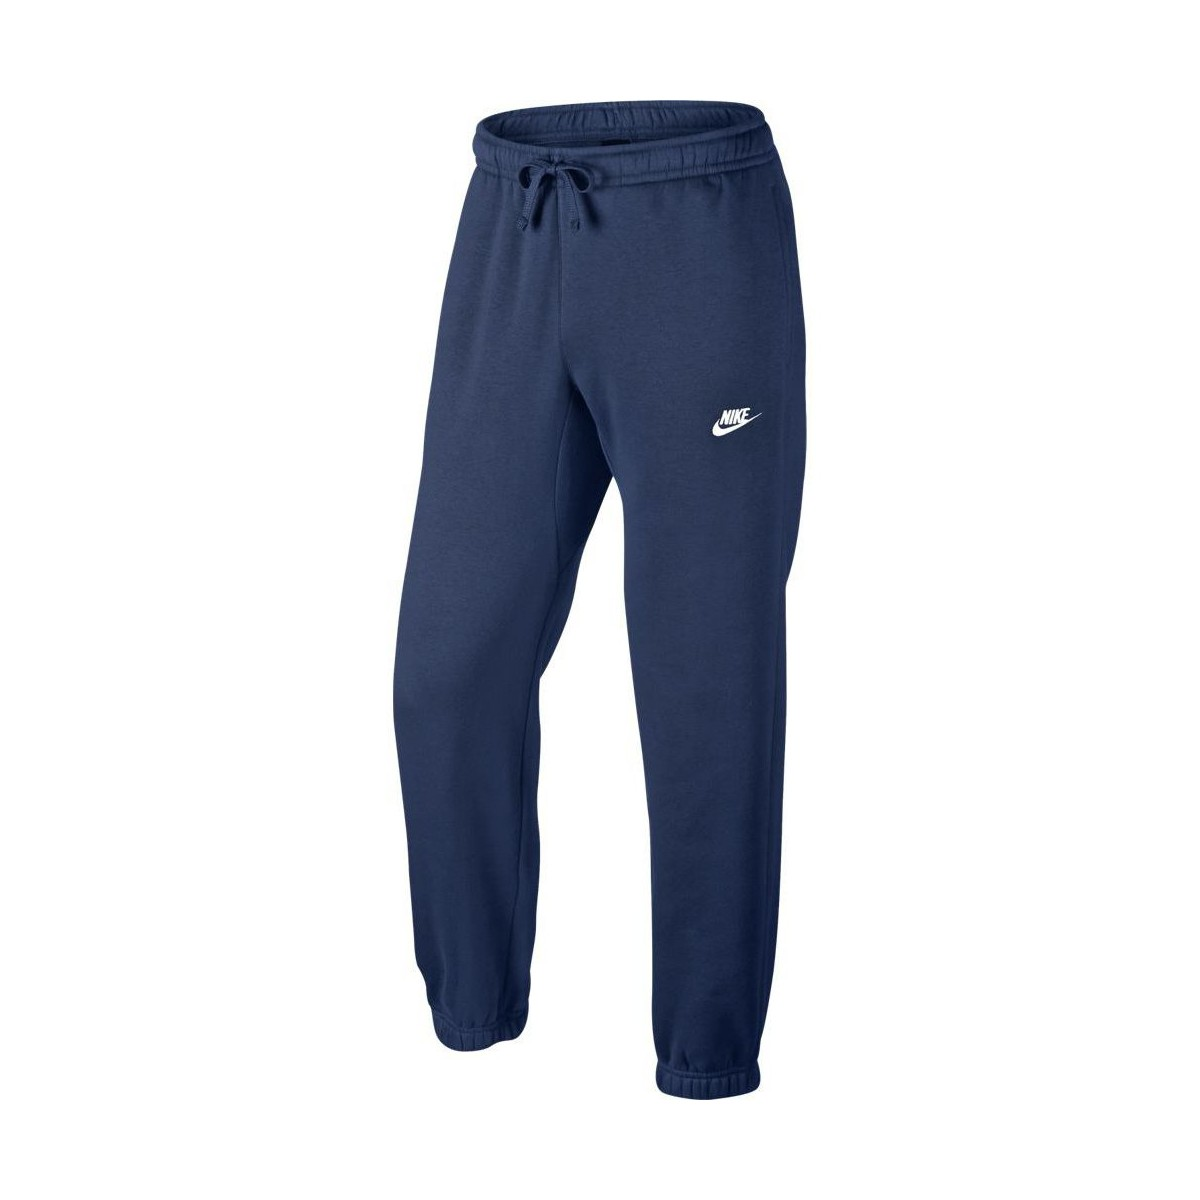 Joggings / Survêtements Nike NSW Pant Coastal Blue / White